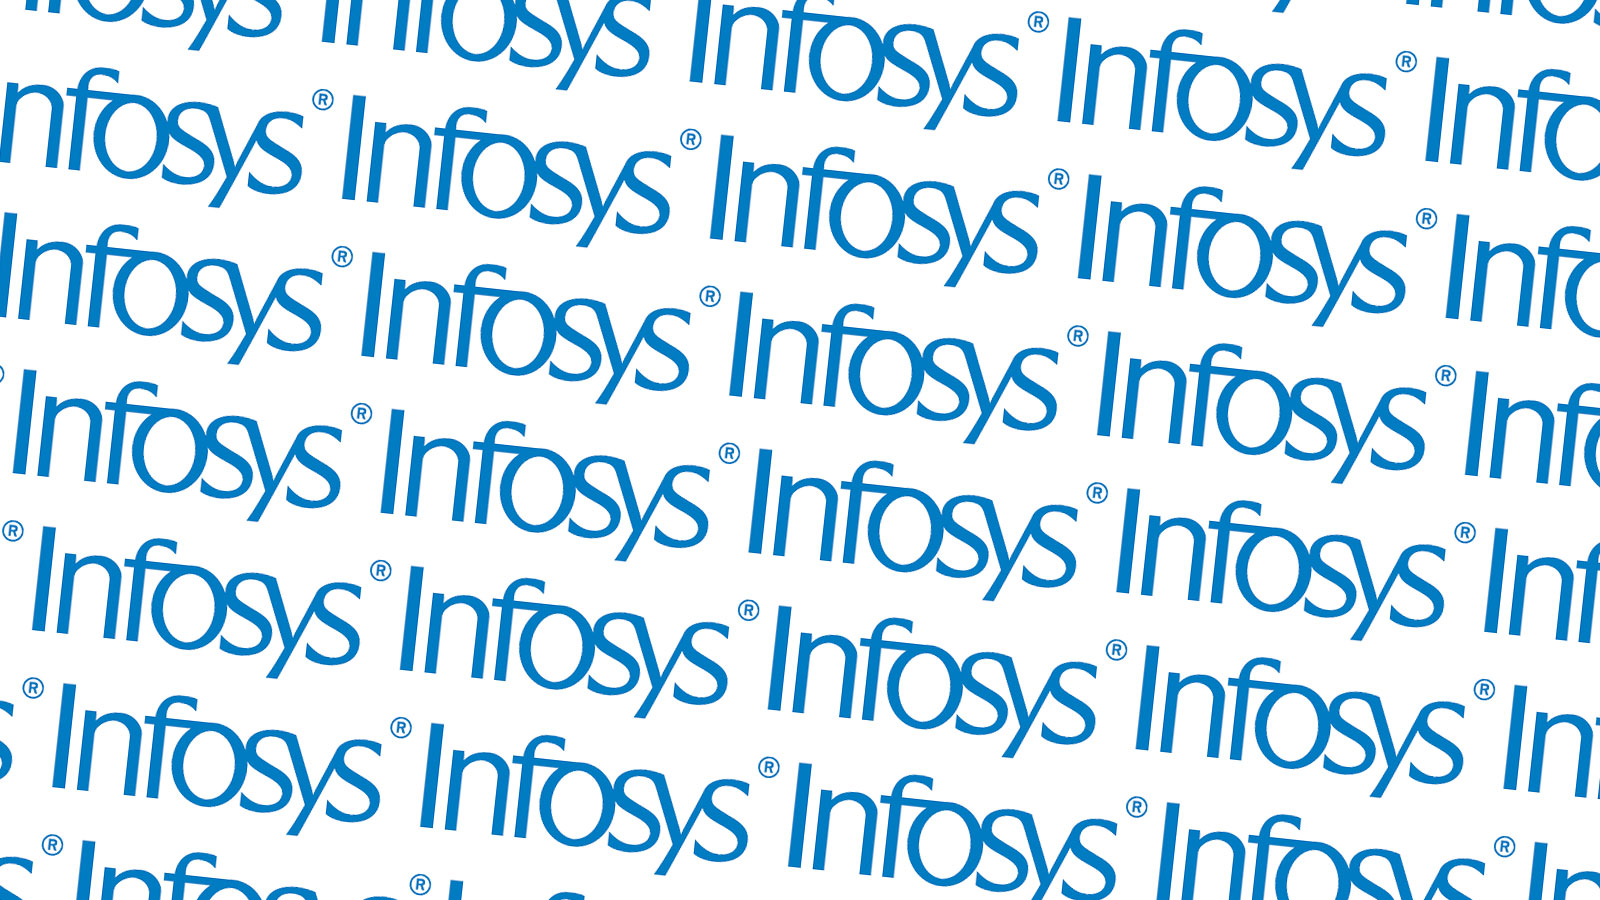 A look at digital services and consulting company Infosys (plus advice for getting hired)